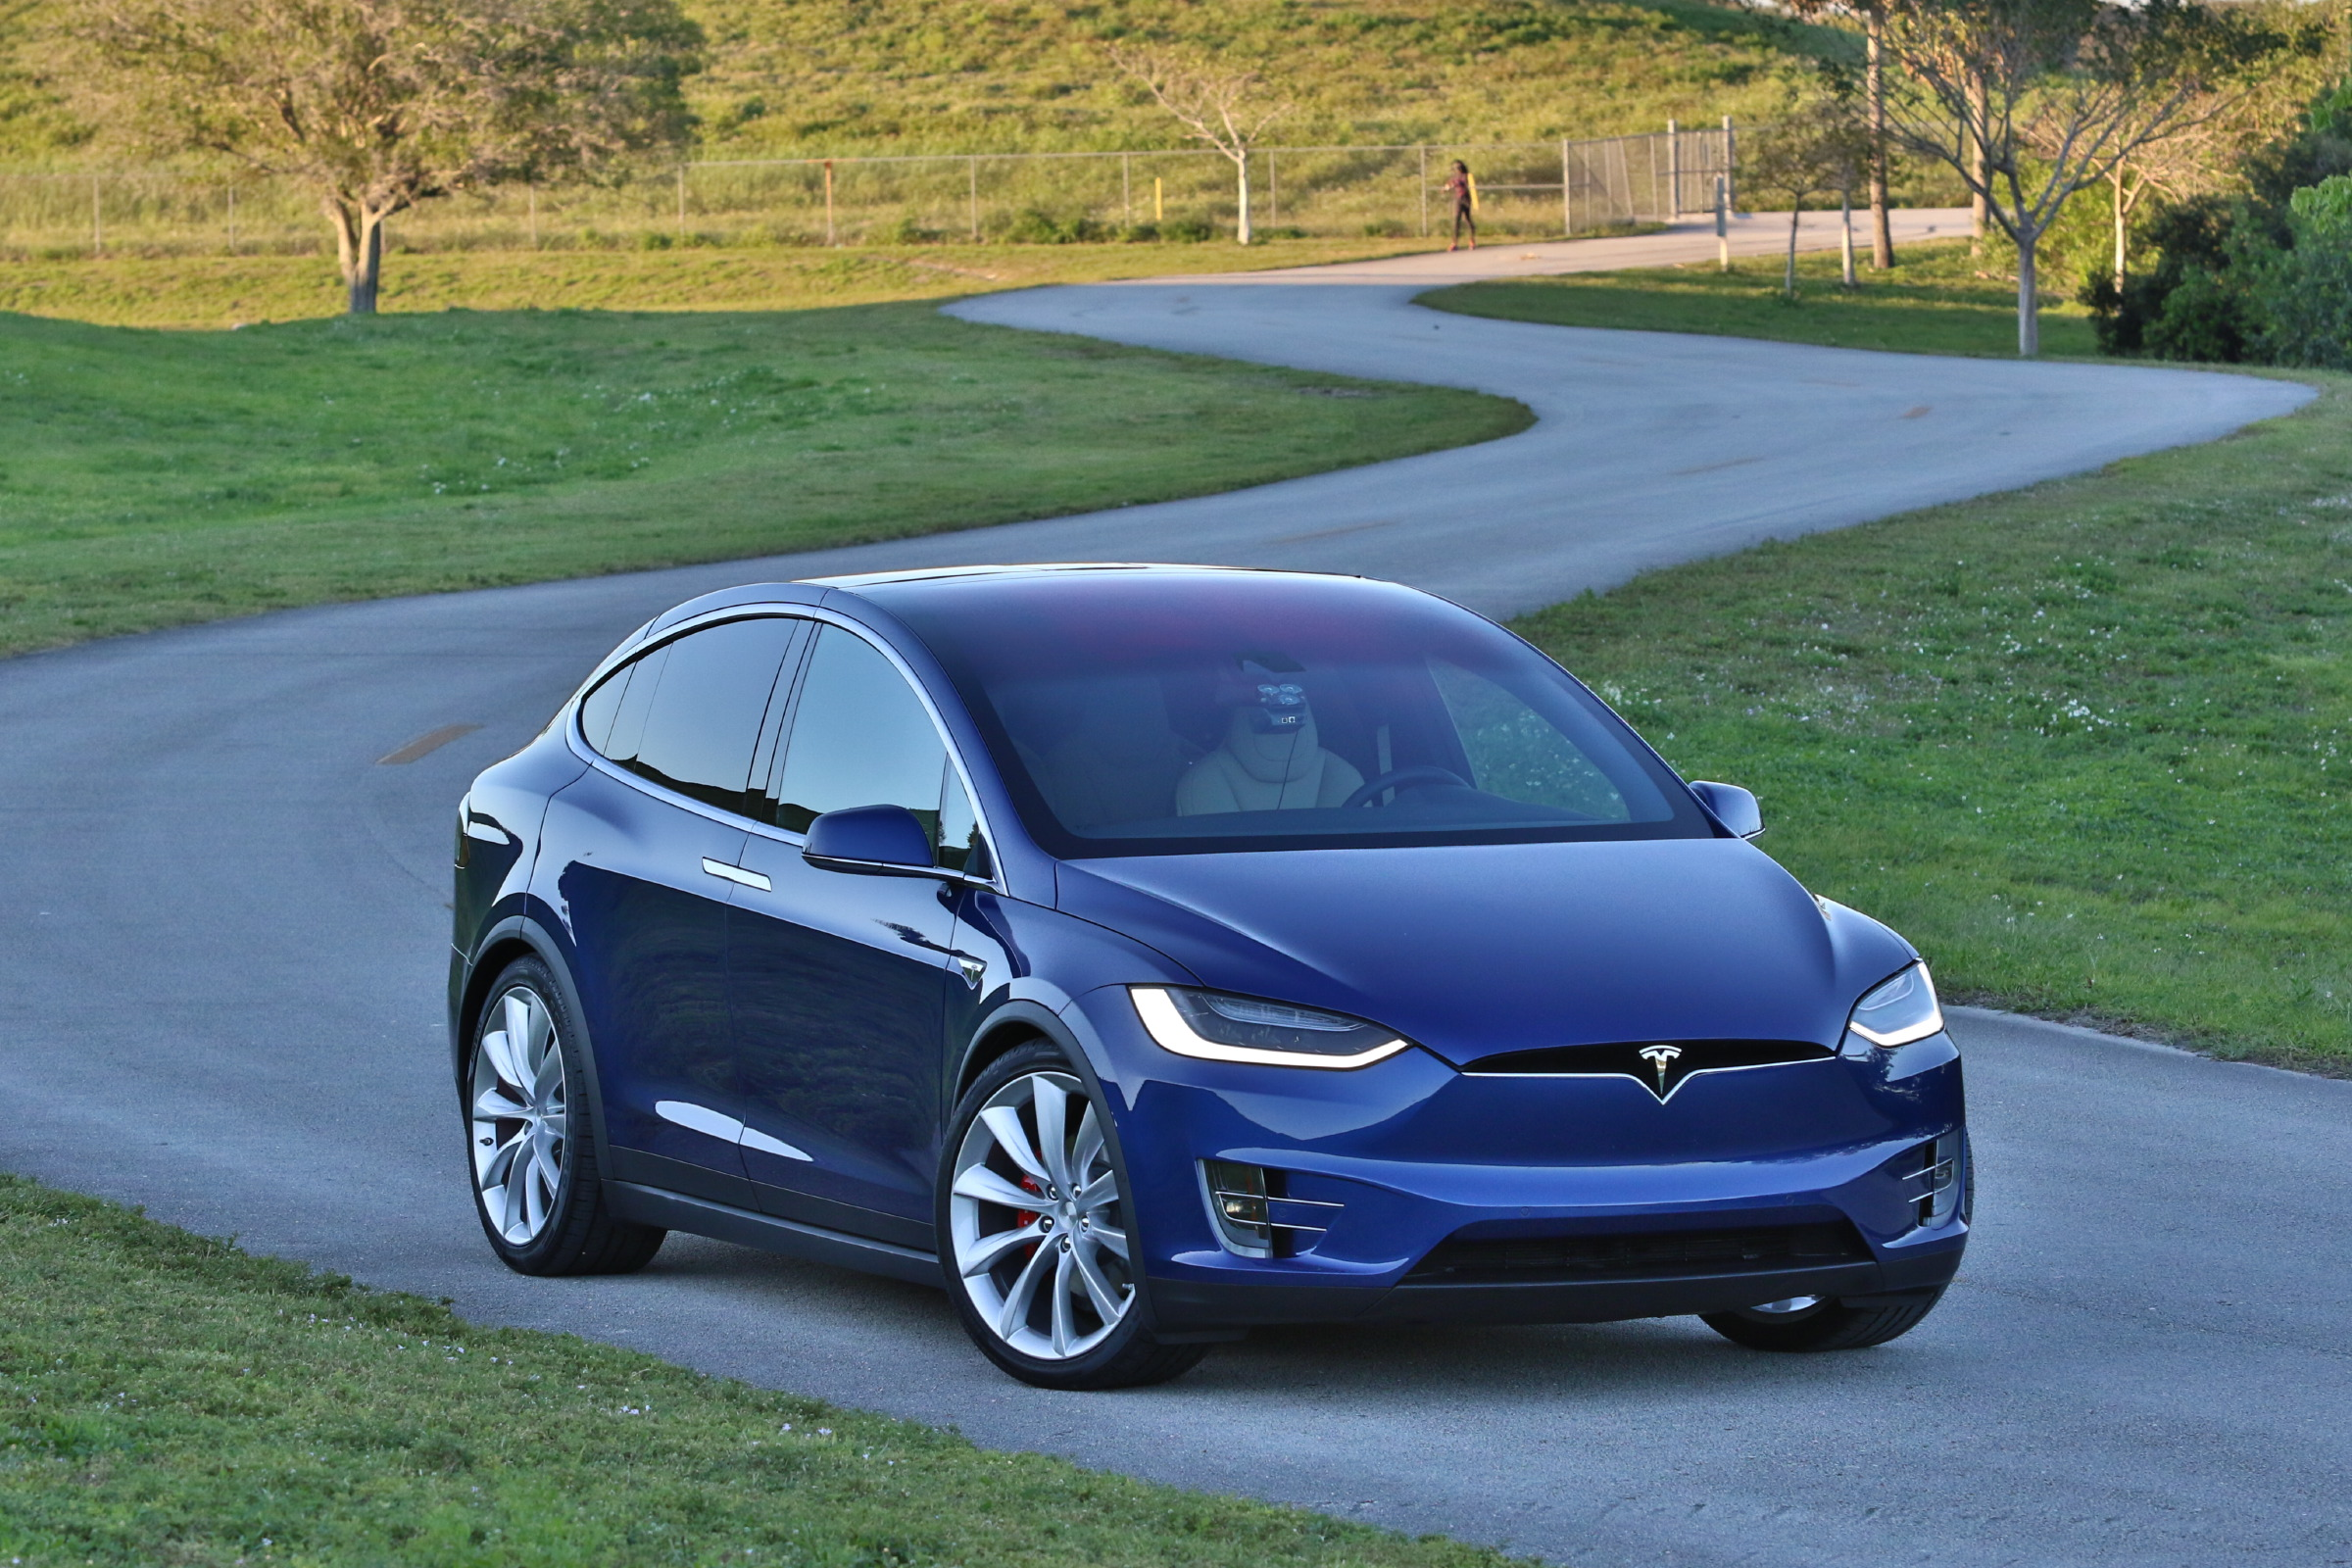 2016 tesla model x p90d deep blue metallic picture gallery. Black Bedroom Furniture Sets. Home Design Ideas